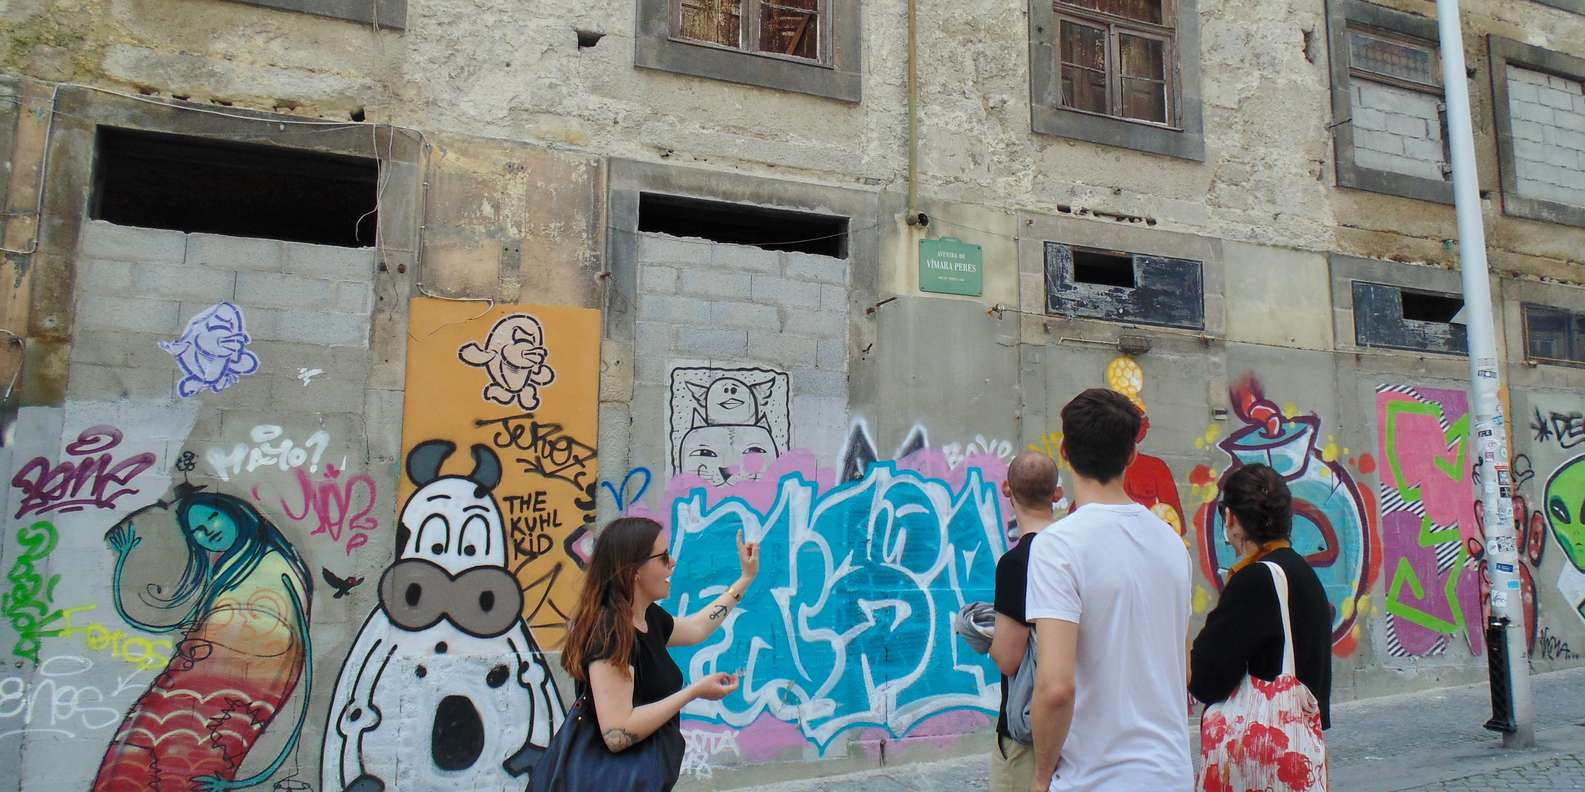 Check out all the Street Art